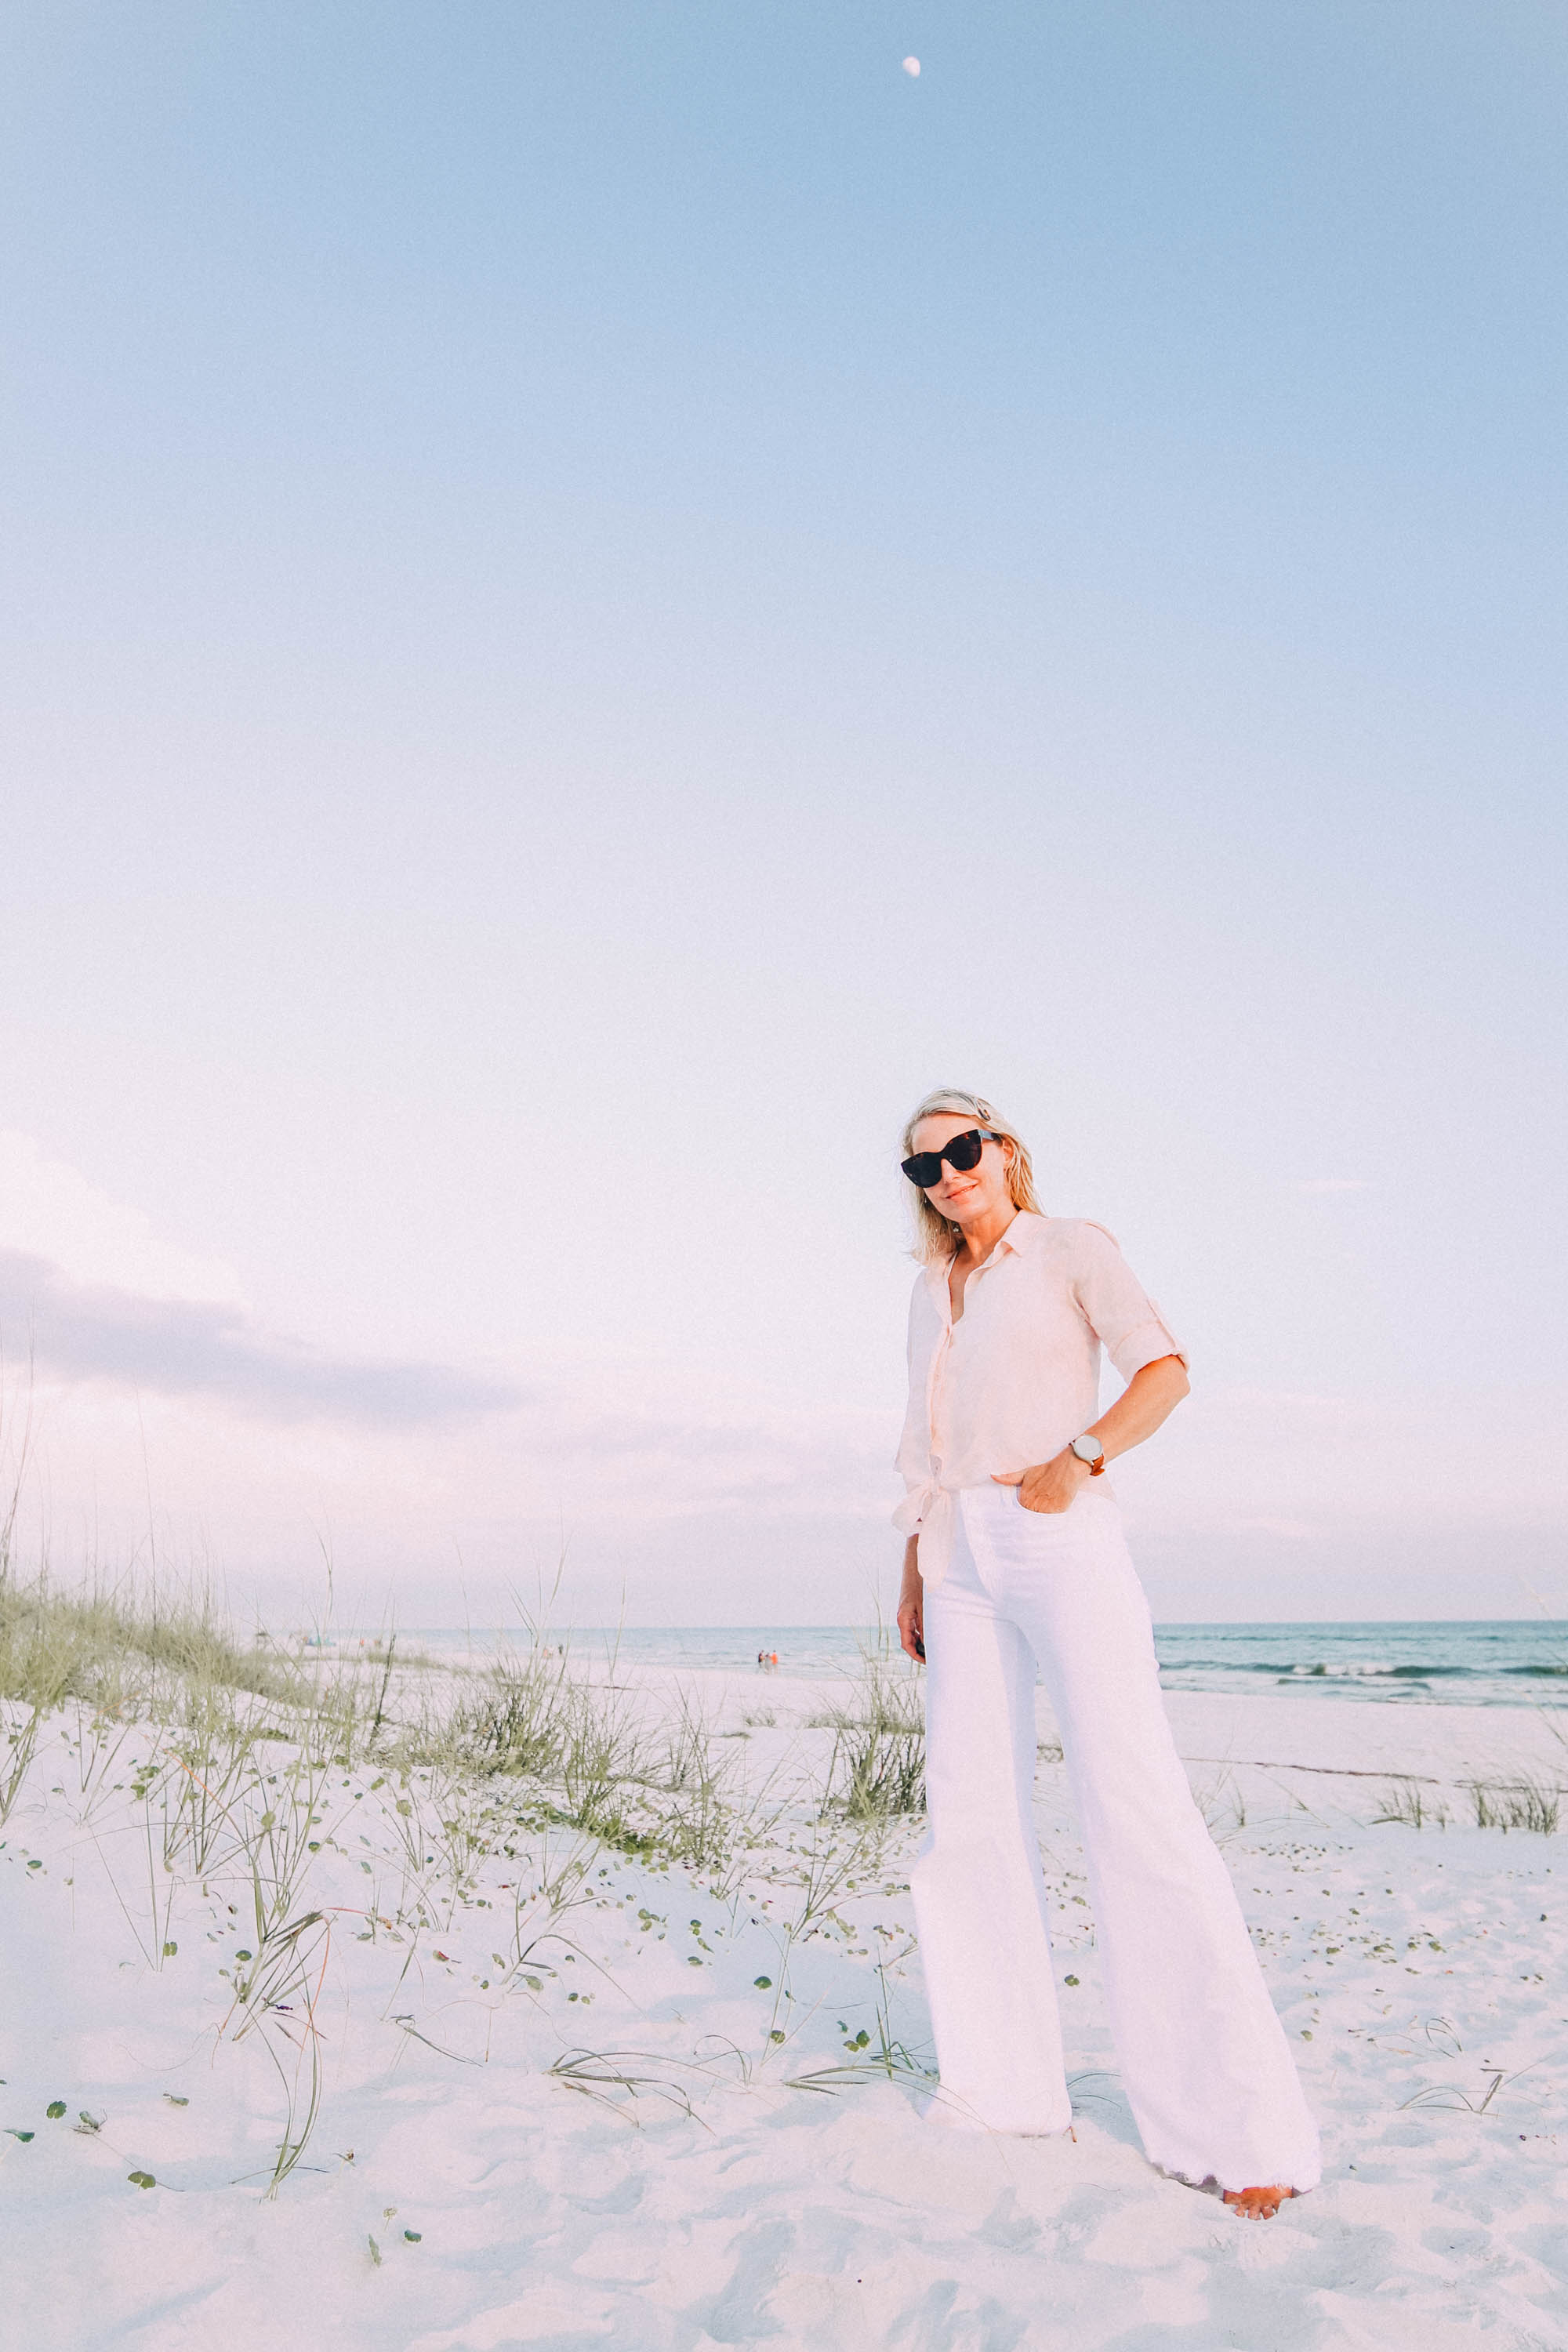 White Jeans For Summer, Fashion blogger Erin Busbee of BusbeeStyle.com wearing white wide leg jeans by Mother with a Bella Dahl pink button up on the beach in Florida